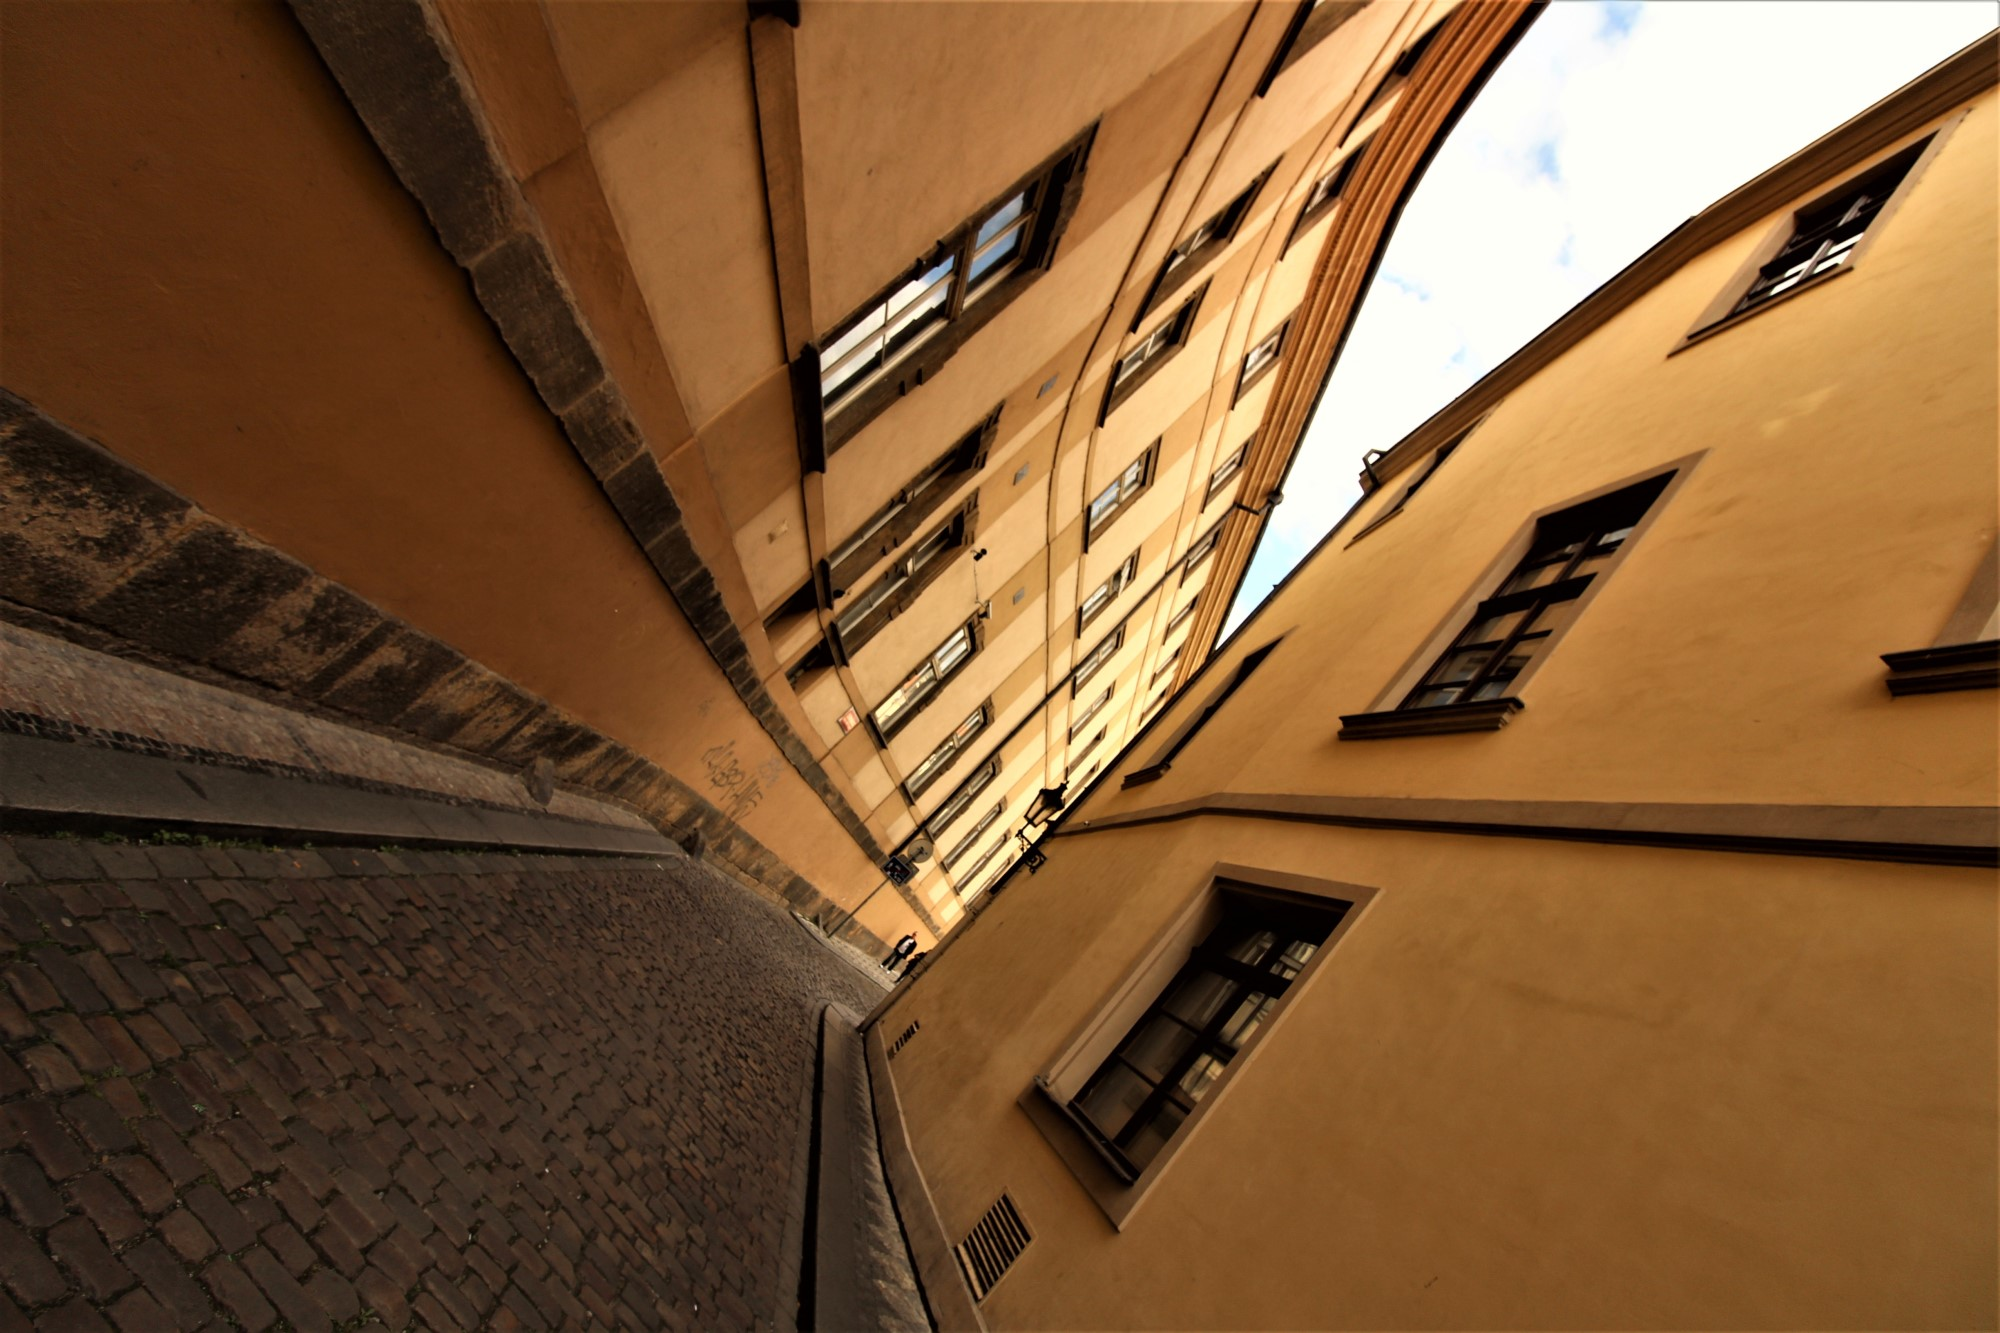 One of the several beautiful alleyways in Prague.